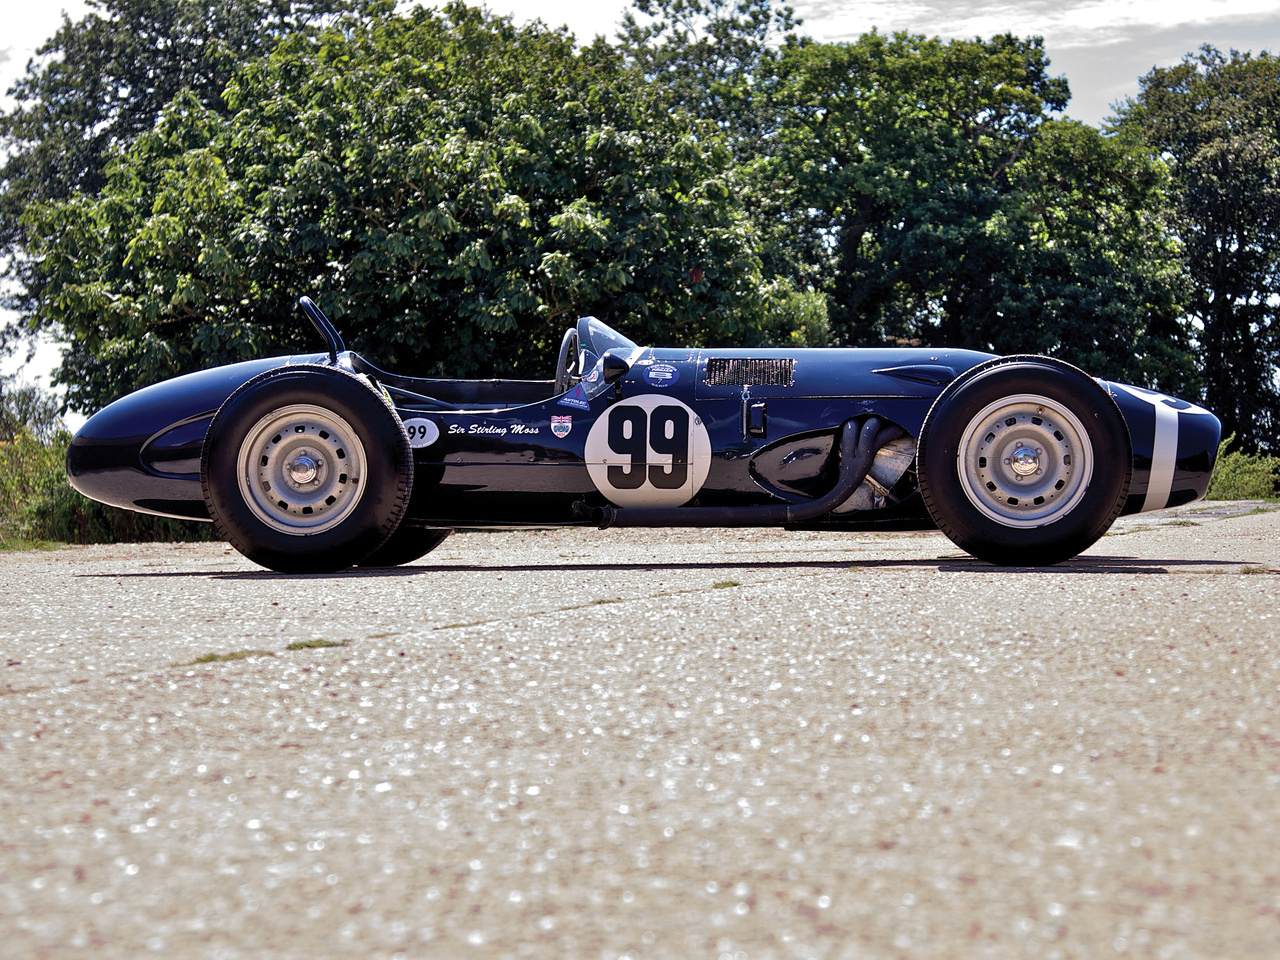 Ferguson P99 Climax 196 Wallpaper and Background Image 1280x960 1280x960